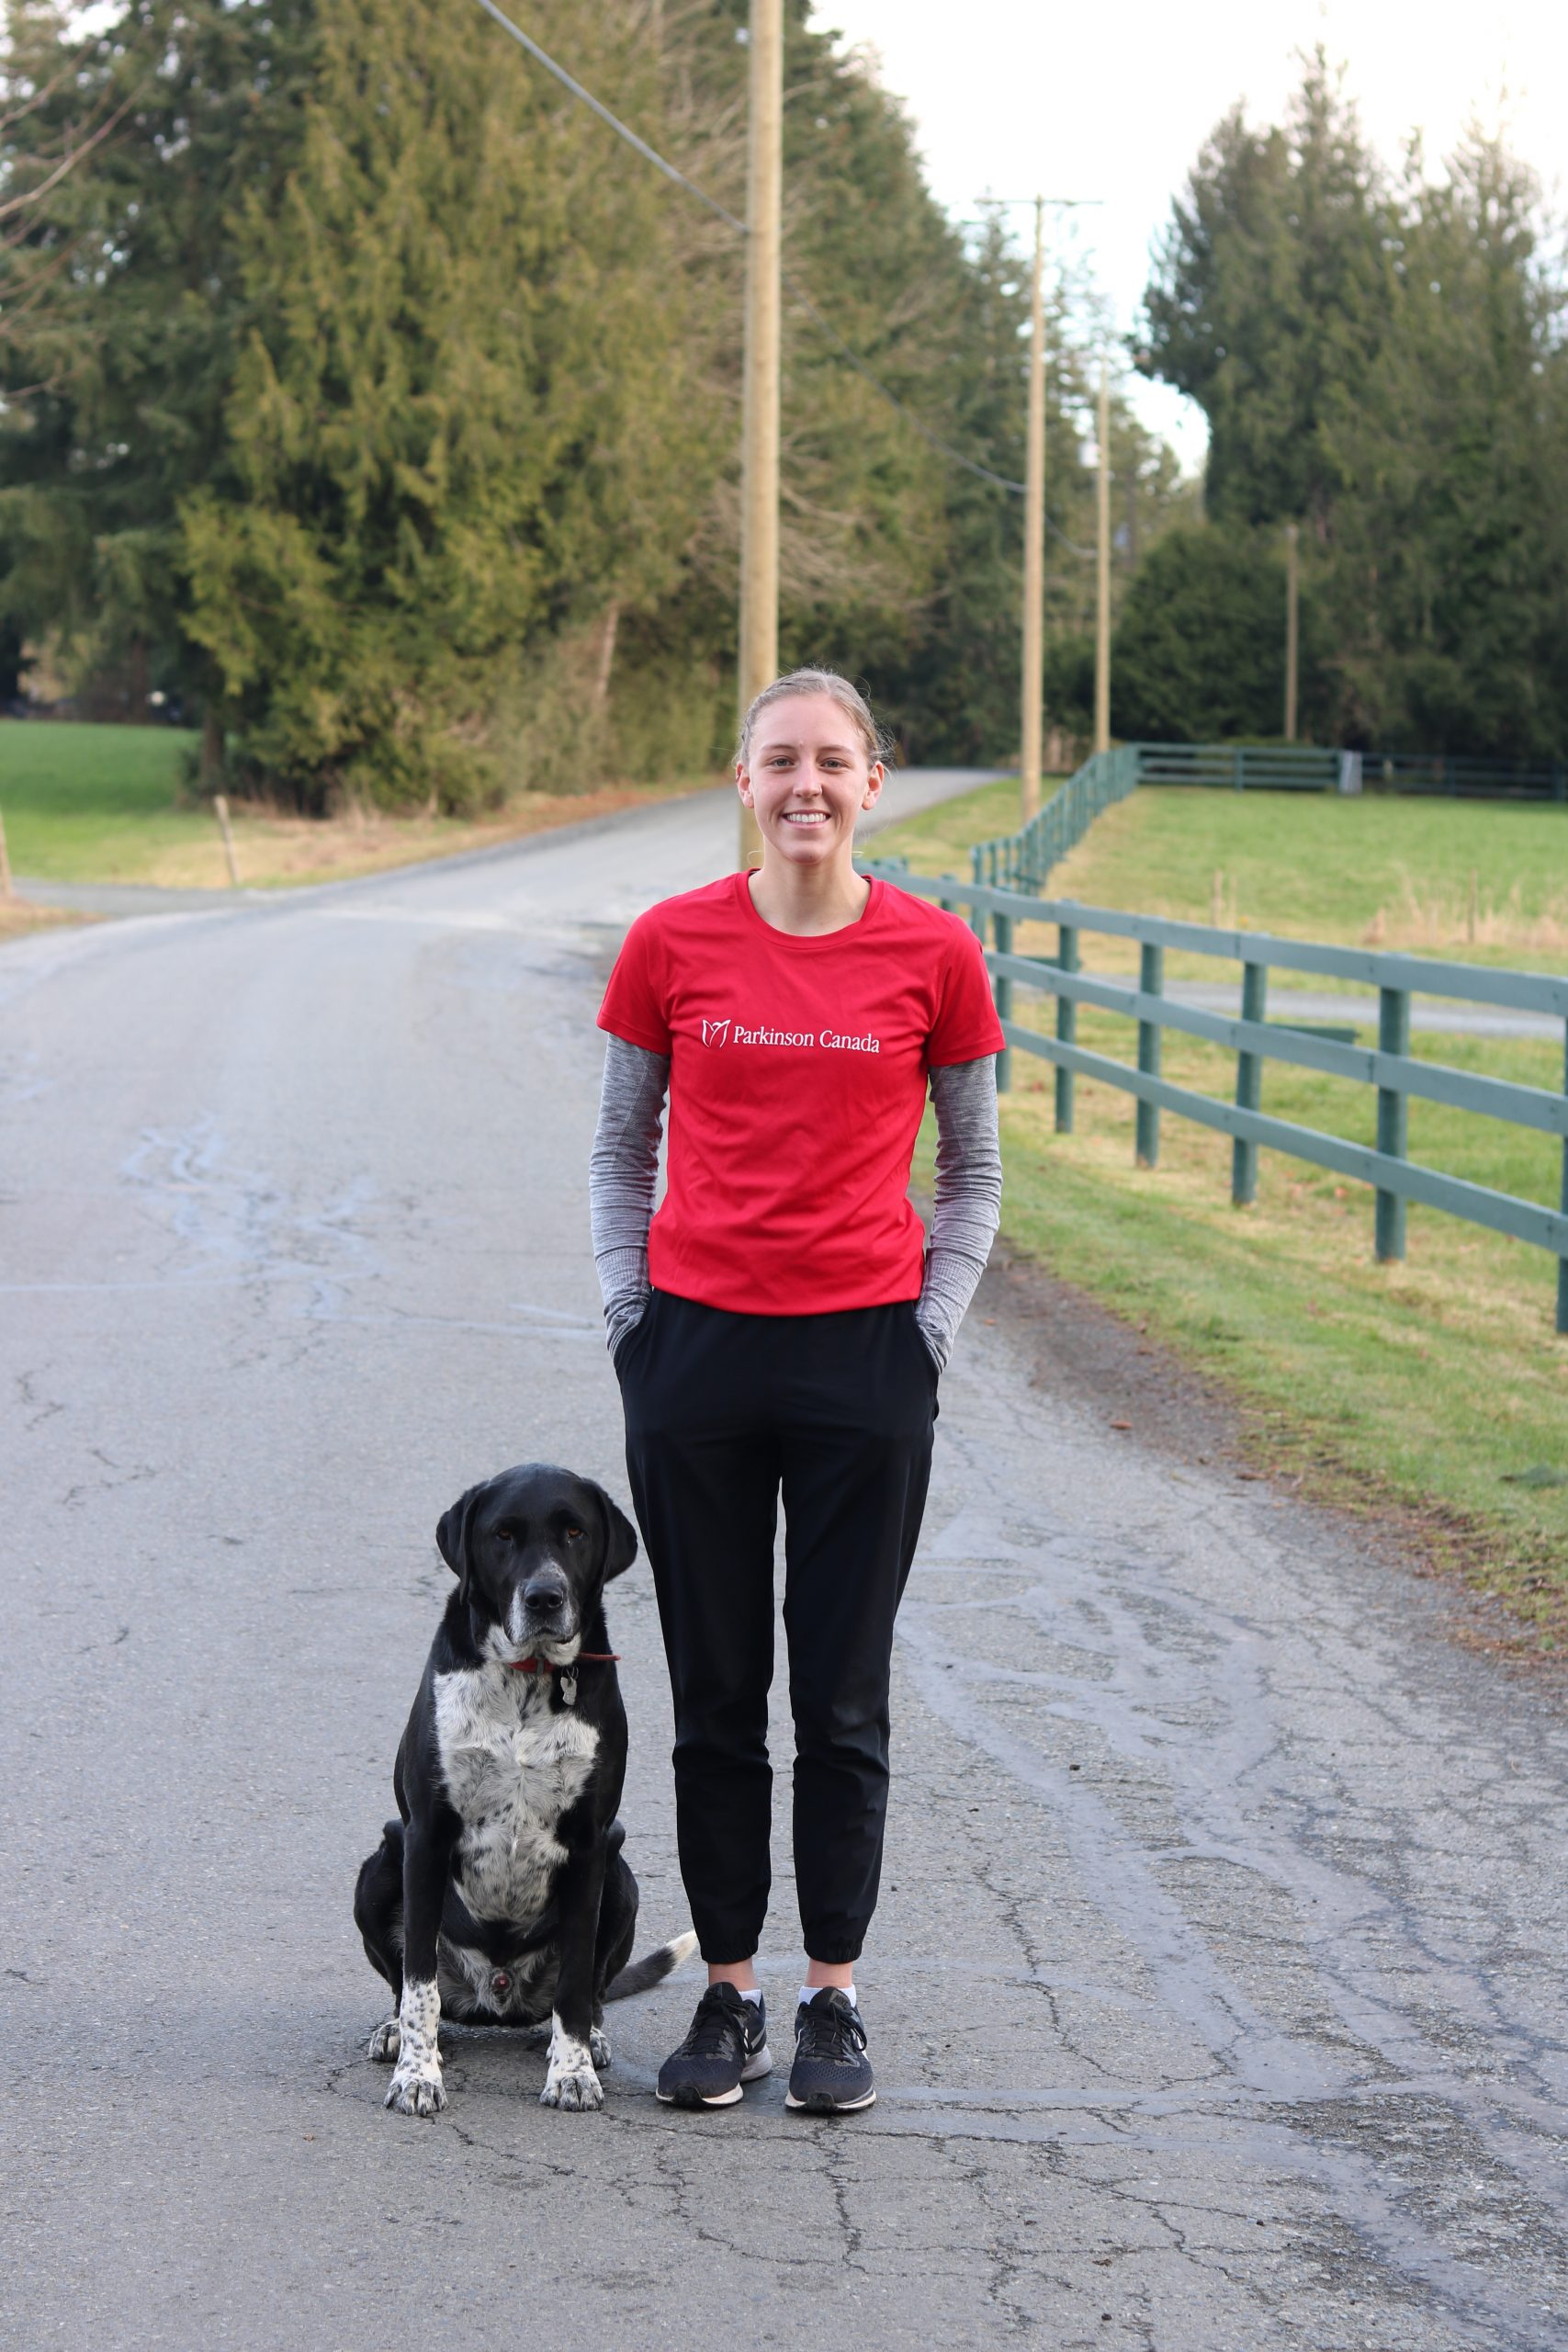 Danielle Groenedijk wearing black leggings and a red shirt reading 'Parkinson Canada' standing on the road beside a grassy field beside her medium height, balck and white dog, Bo